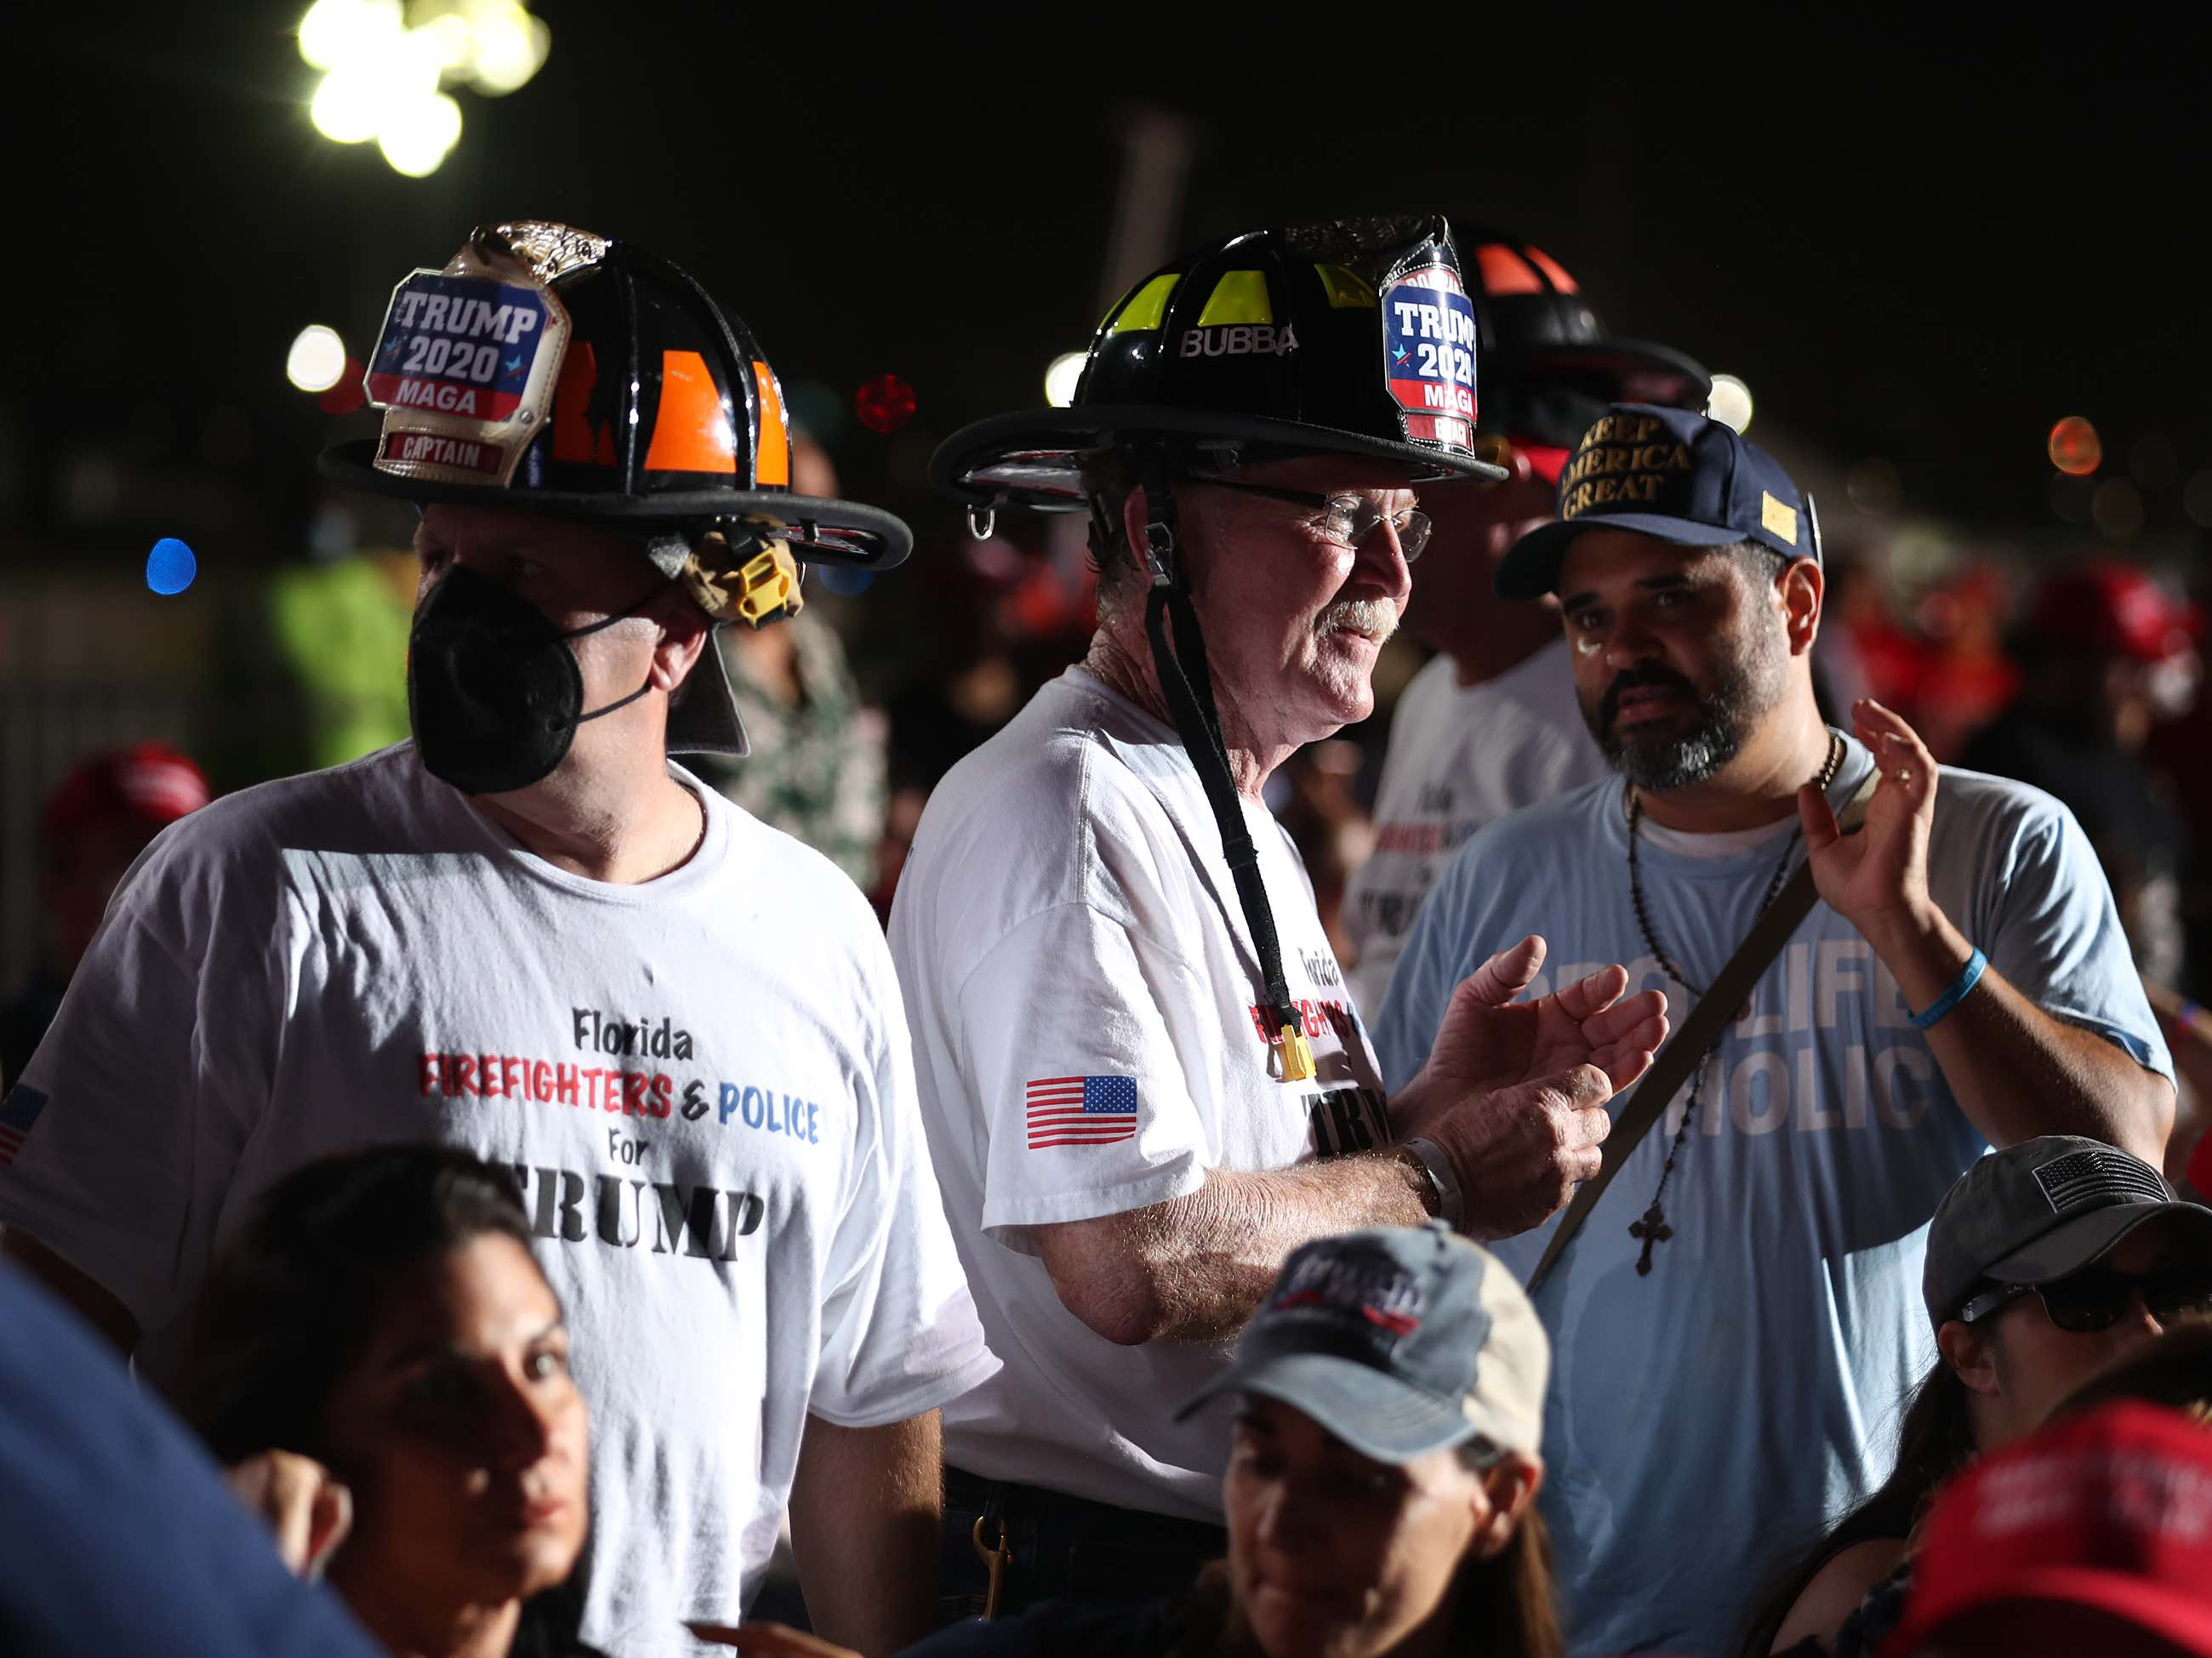 Firefighters at Miami rally (Joe Raedle / Getty)